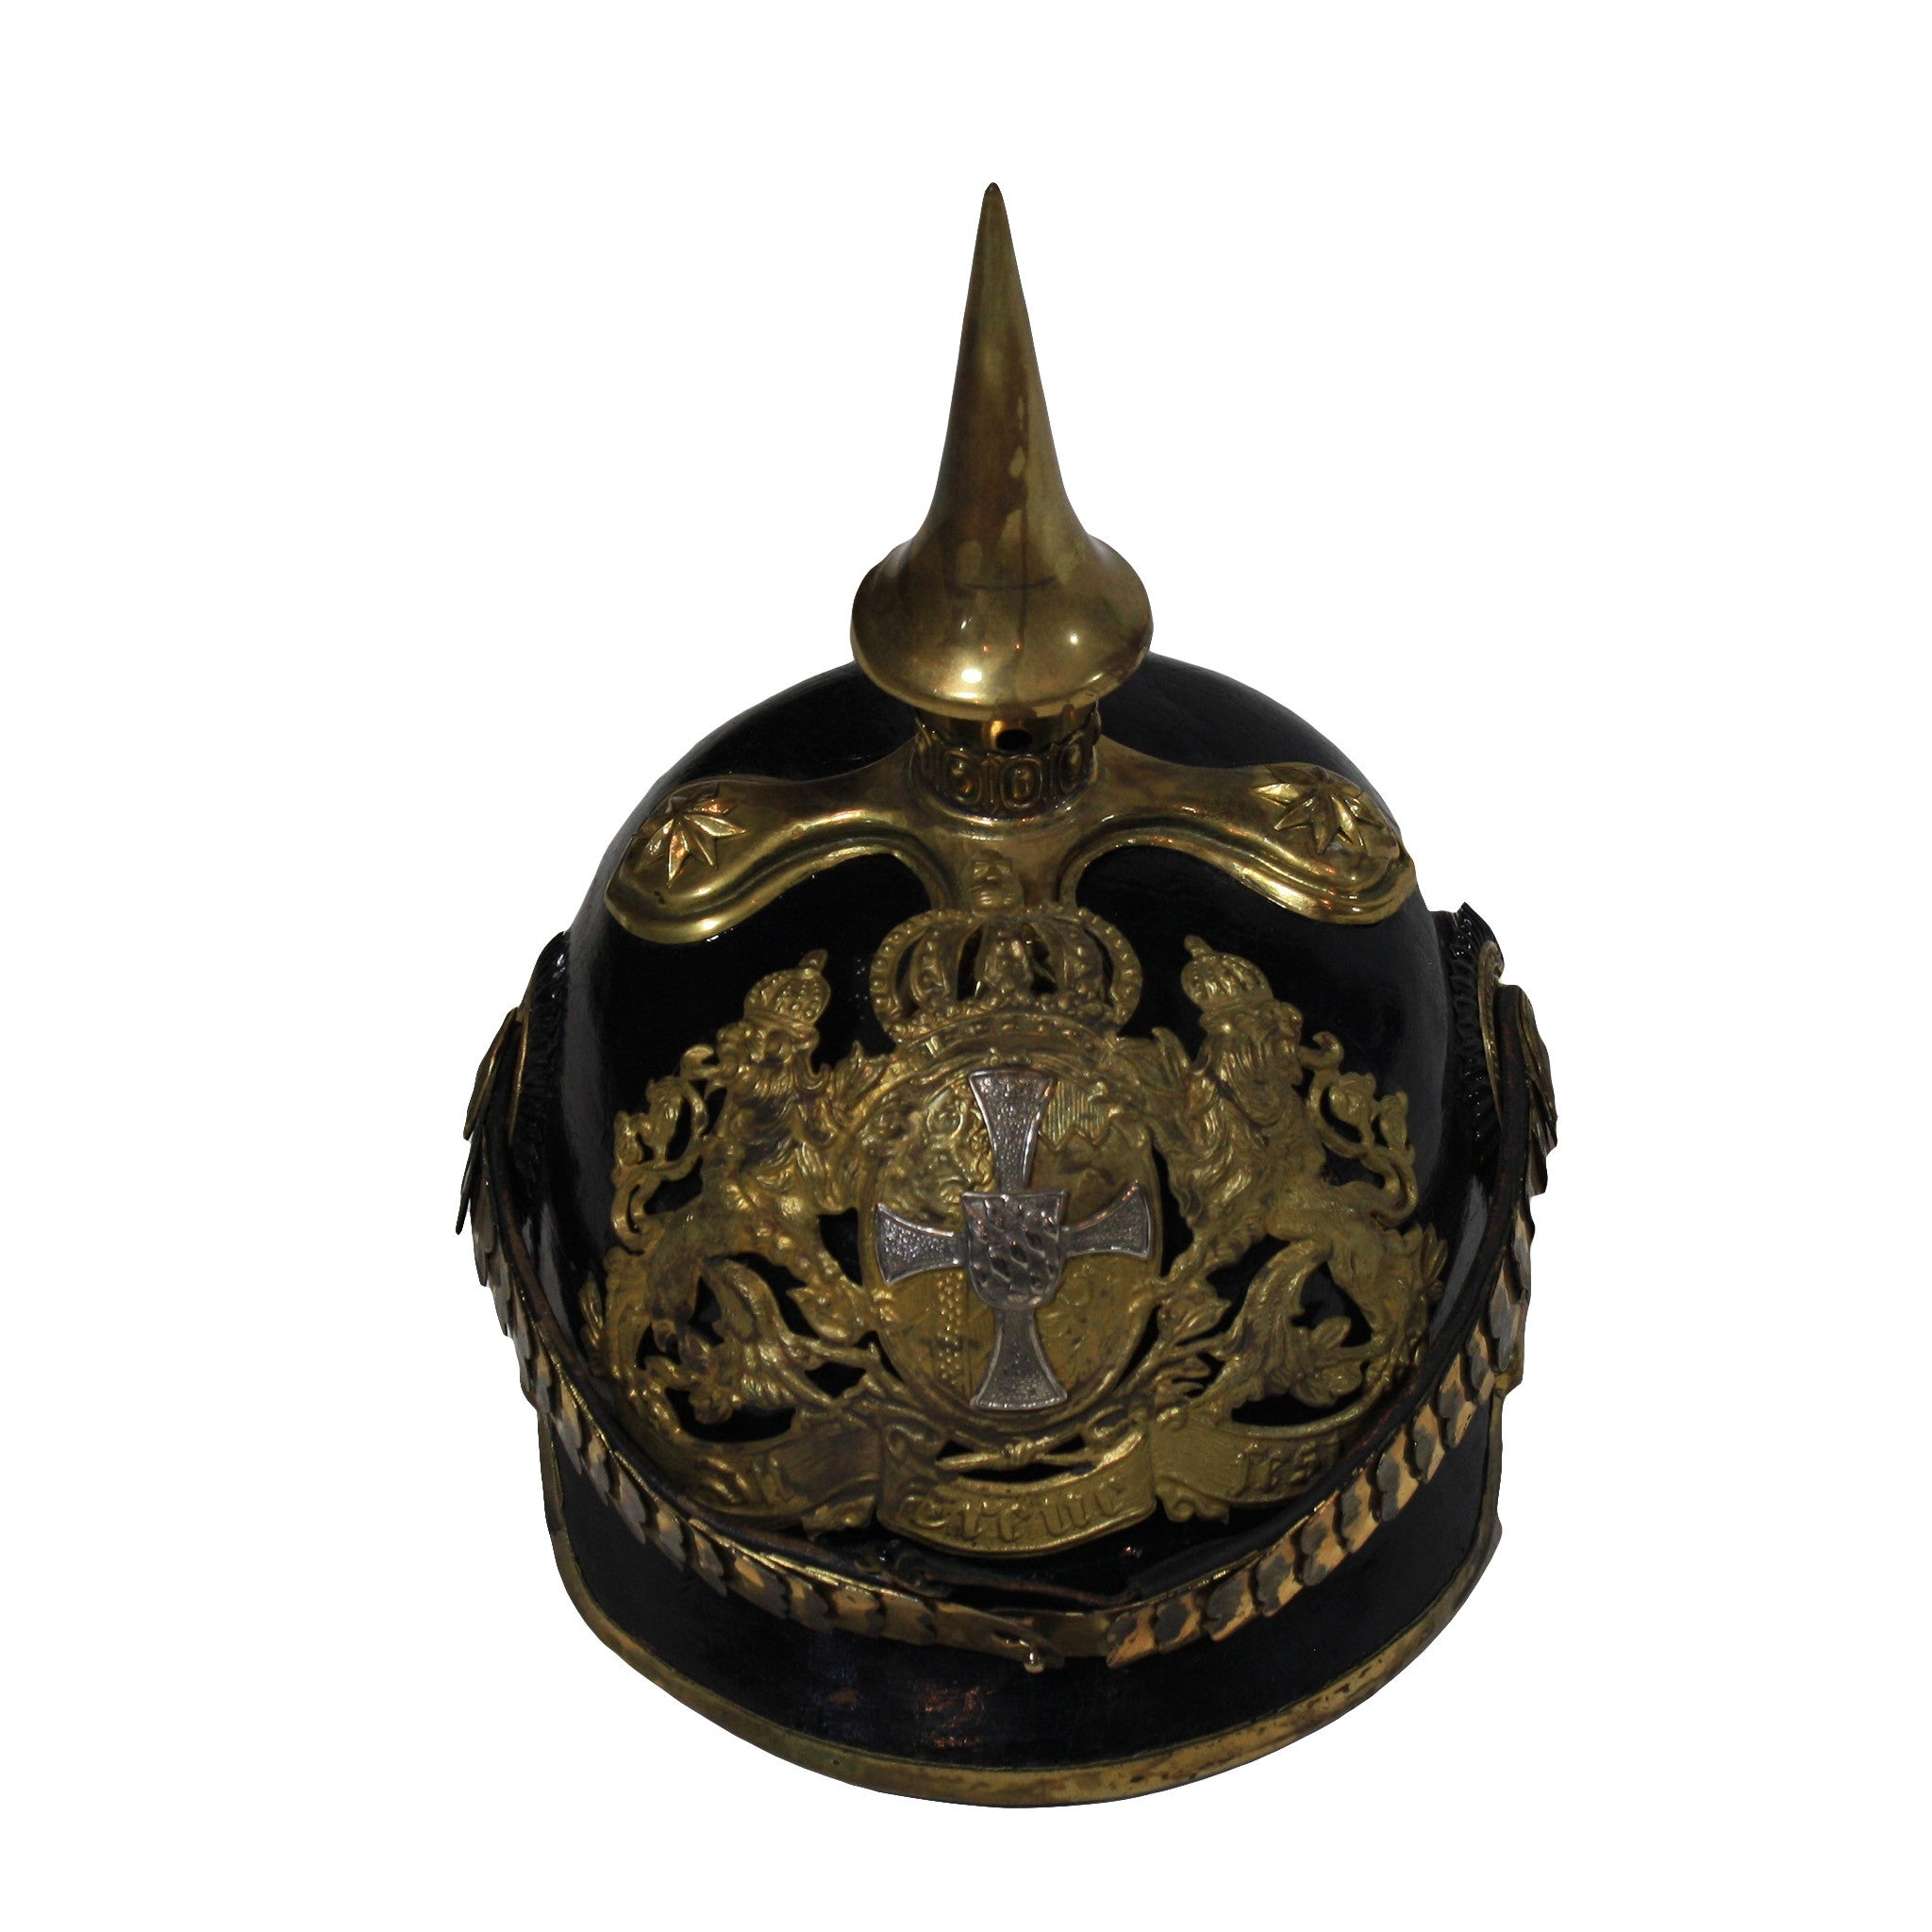 Prussian/German Imperial Helmet